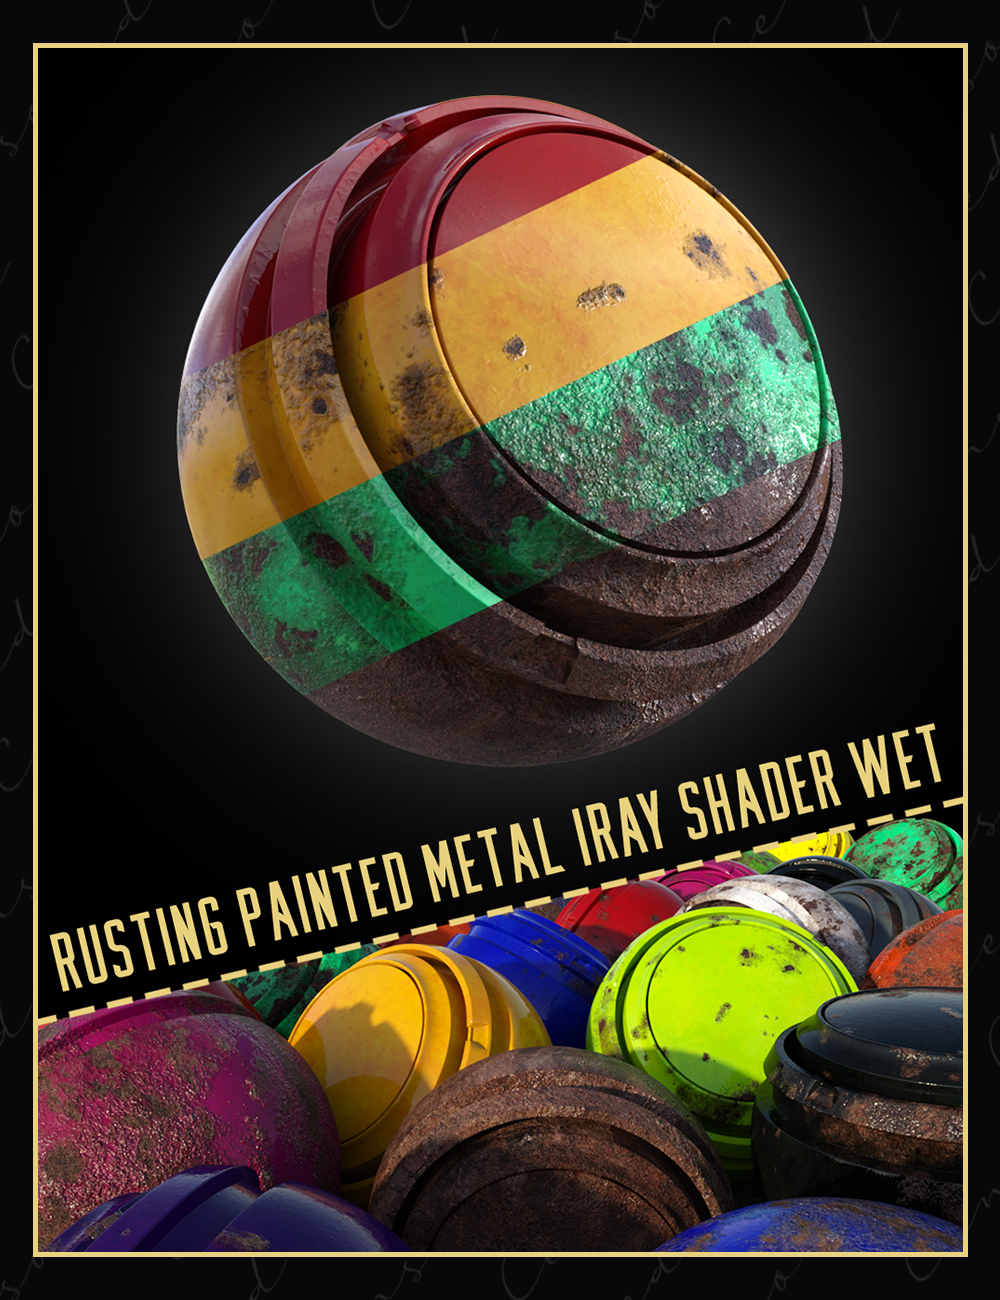 Rusting Painted Metal Iray Shader Wet by: Censored, 3D Models by Daz 3D